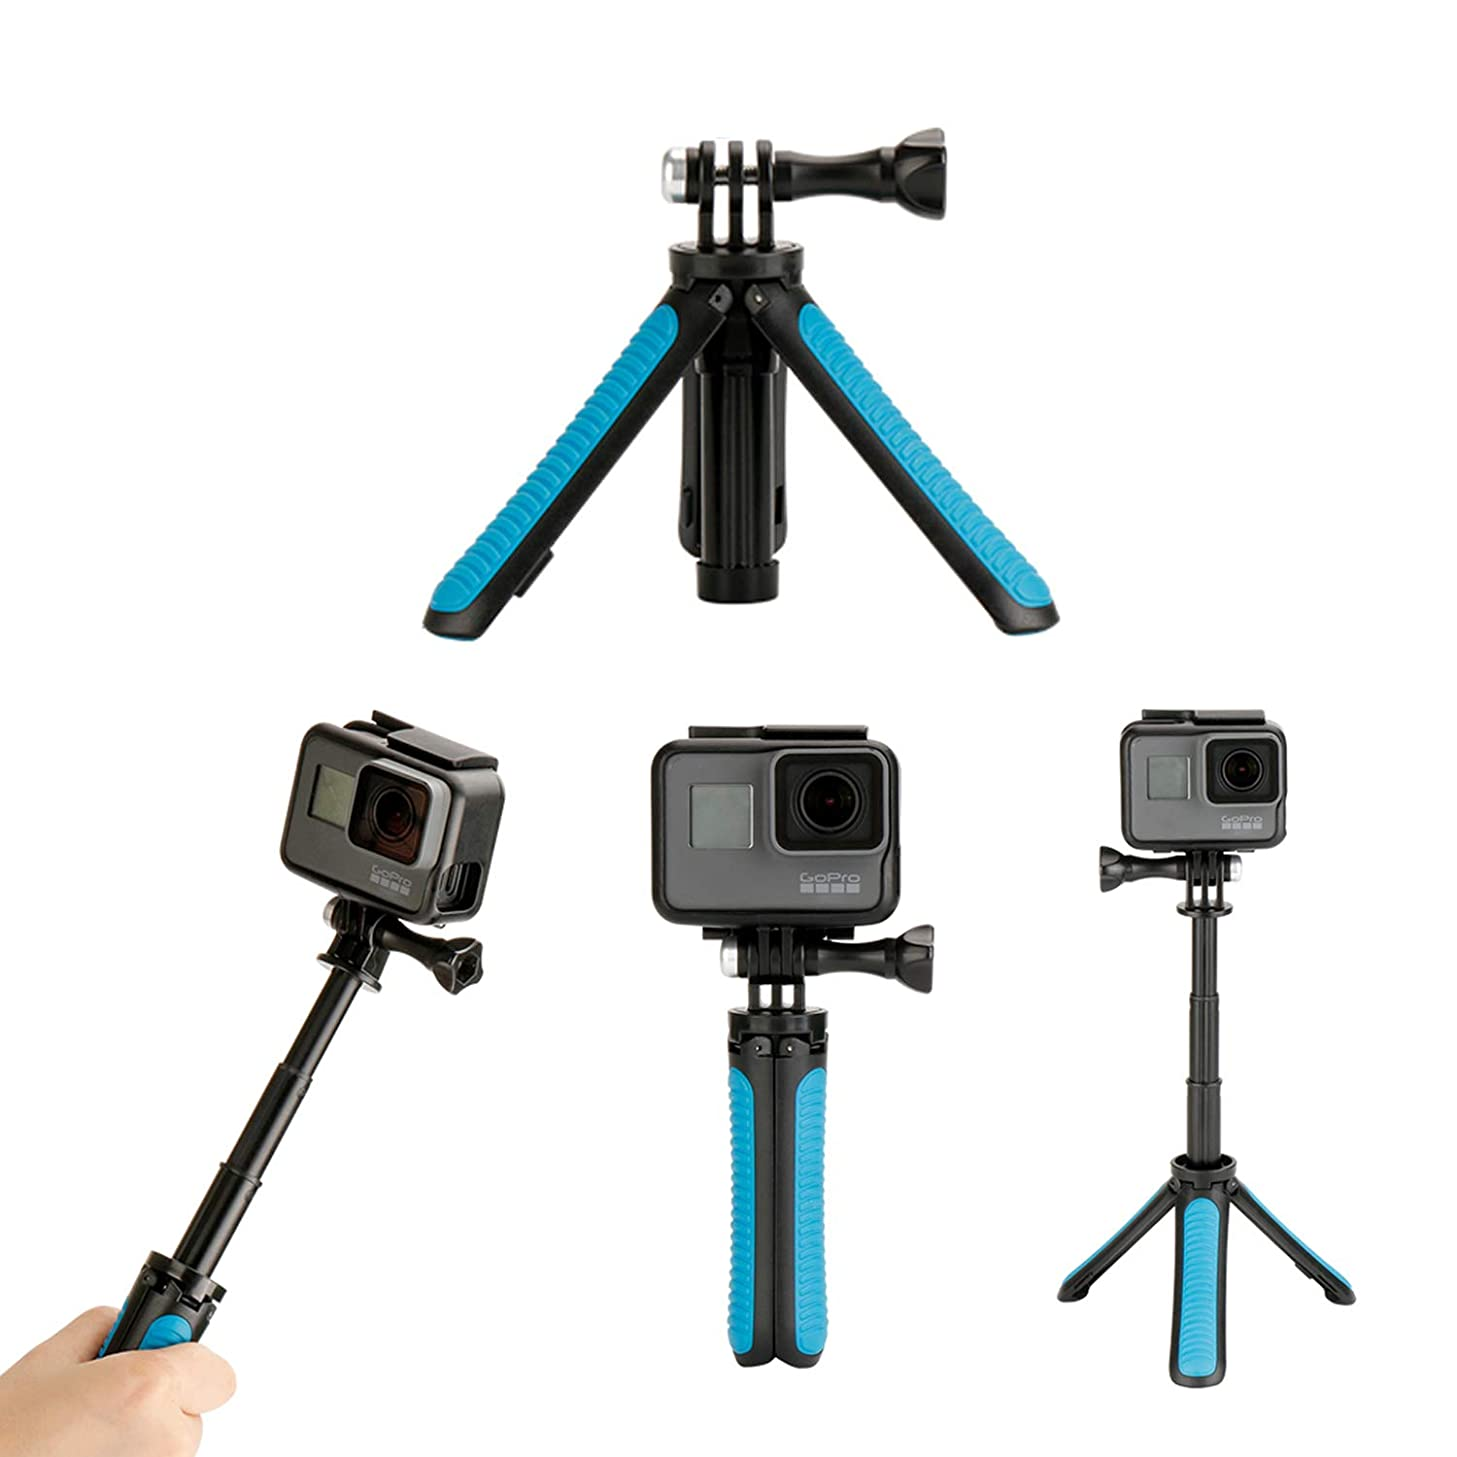 Extension Pole Tripod Compatible with GoPro Hero 7, 6, 5,4, 3, 2, 1 Action Camera Tripod for Phone Selfie Stick Video 1pc